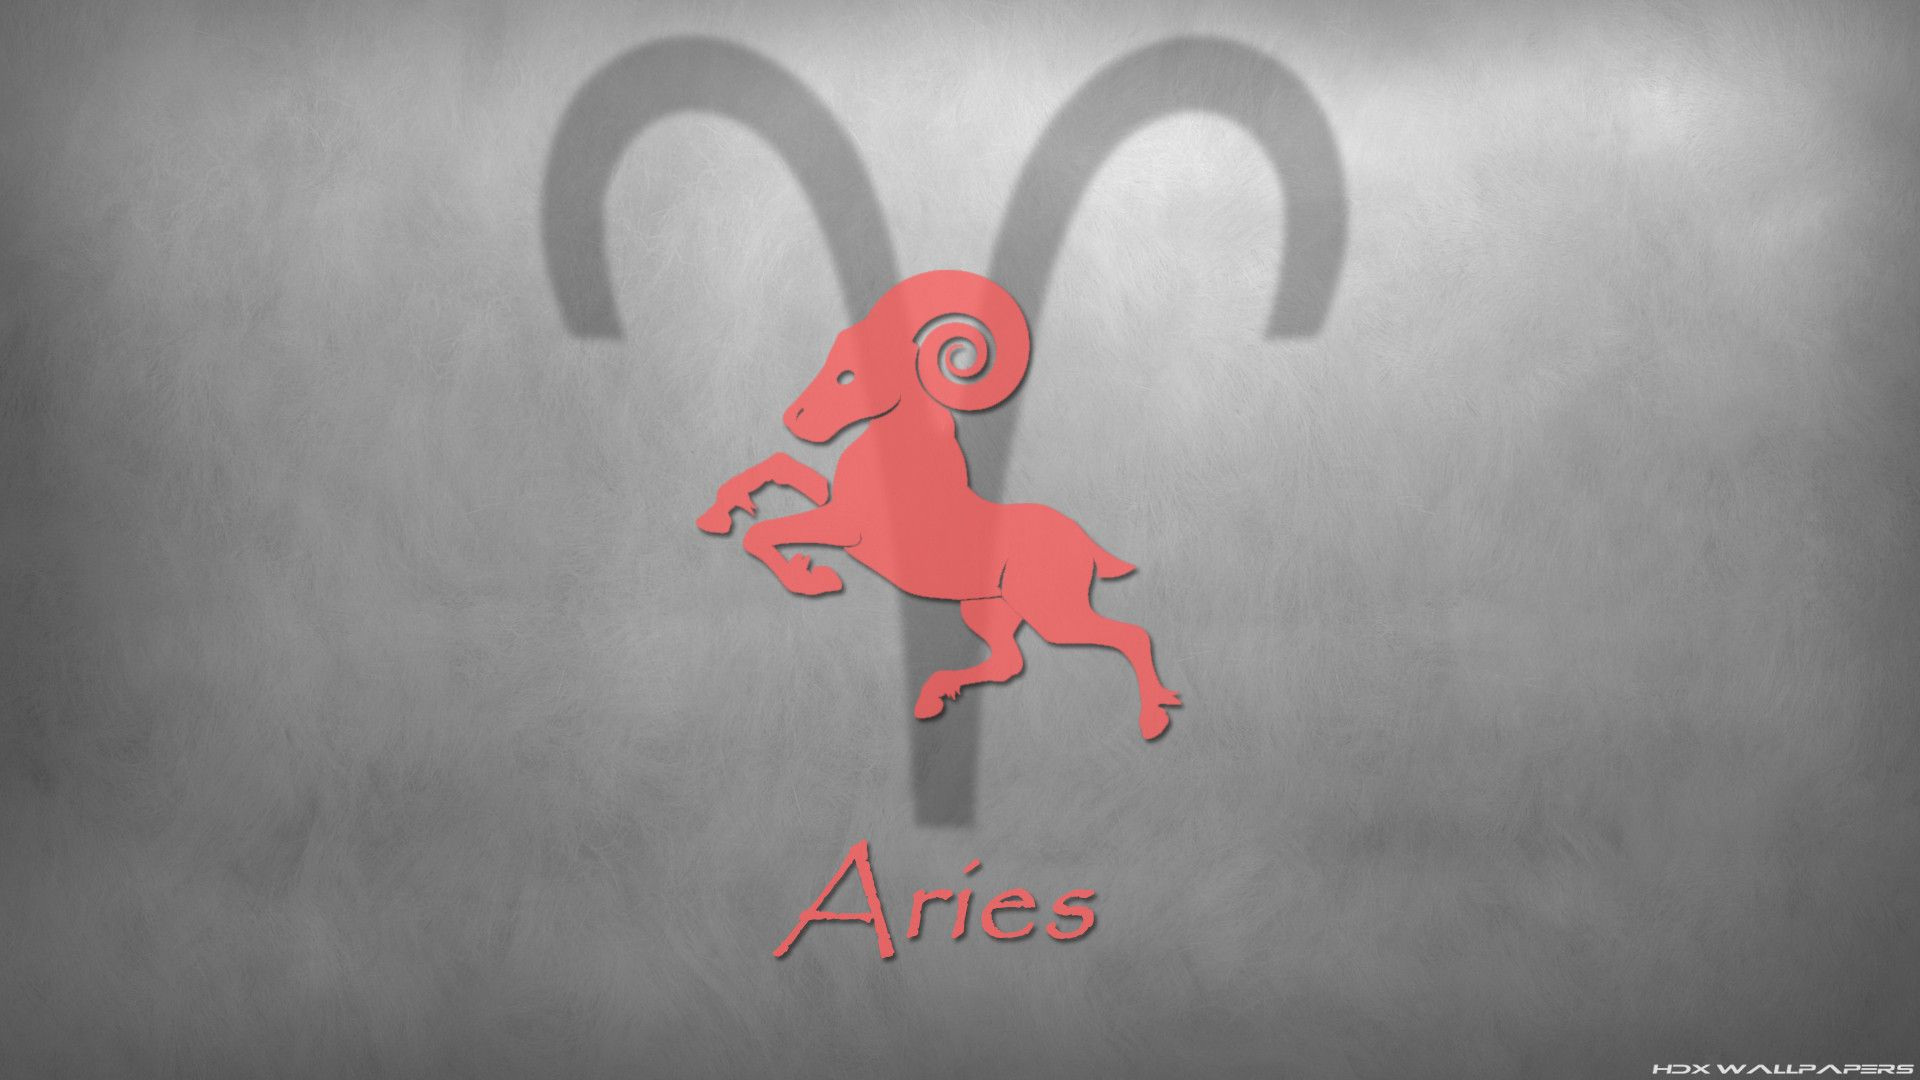 Fondos-HD-de-Aries-Fondosdepantalla.top (2)